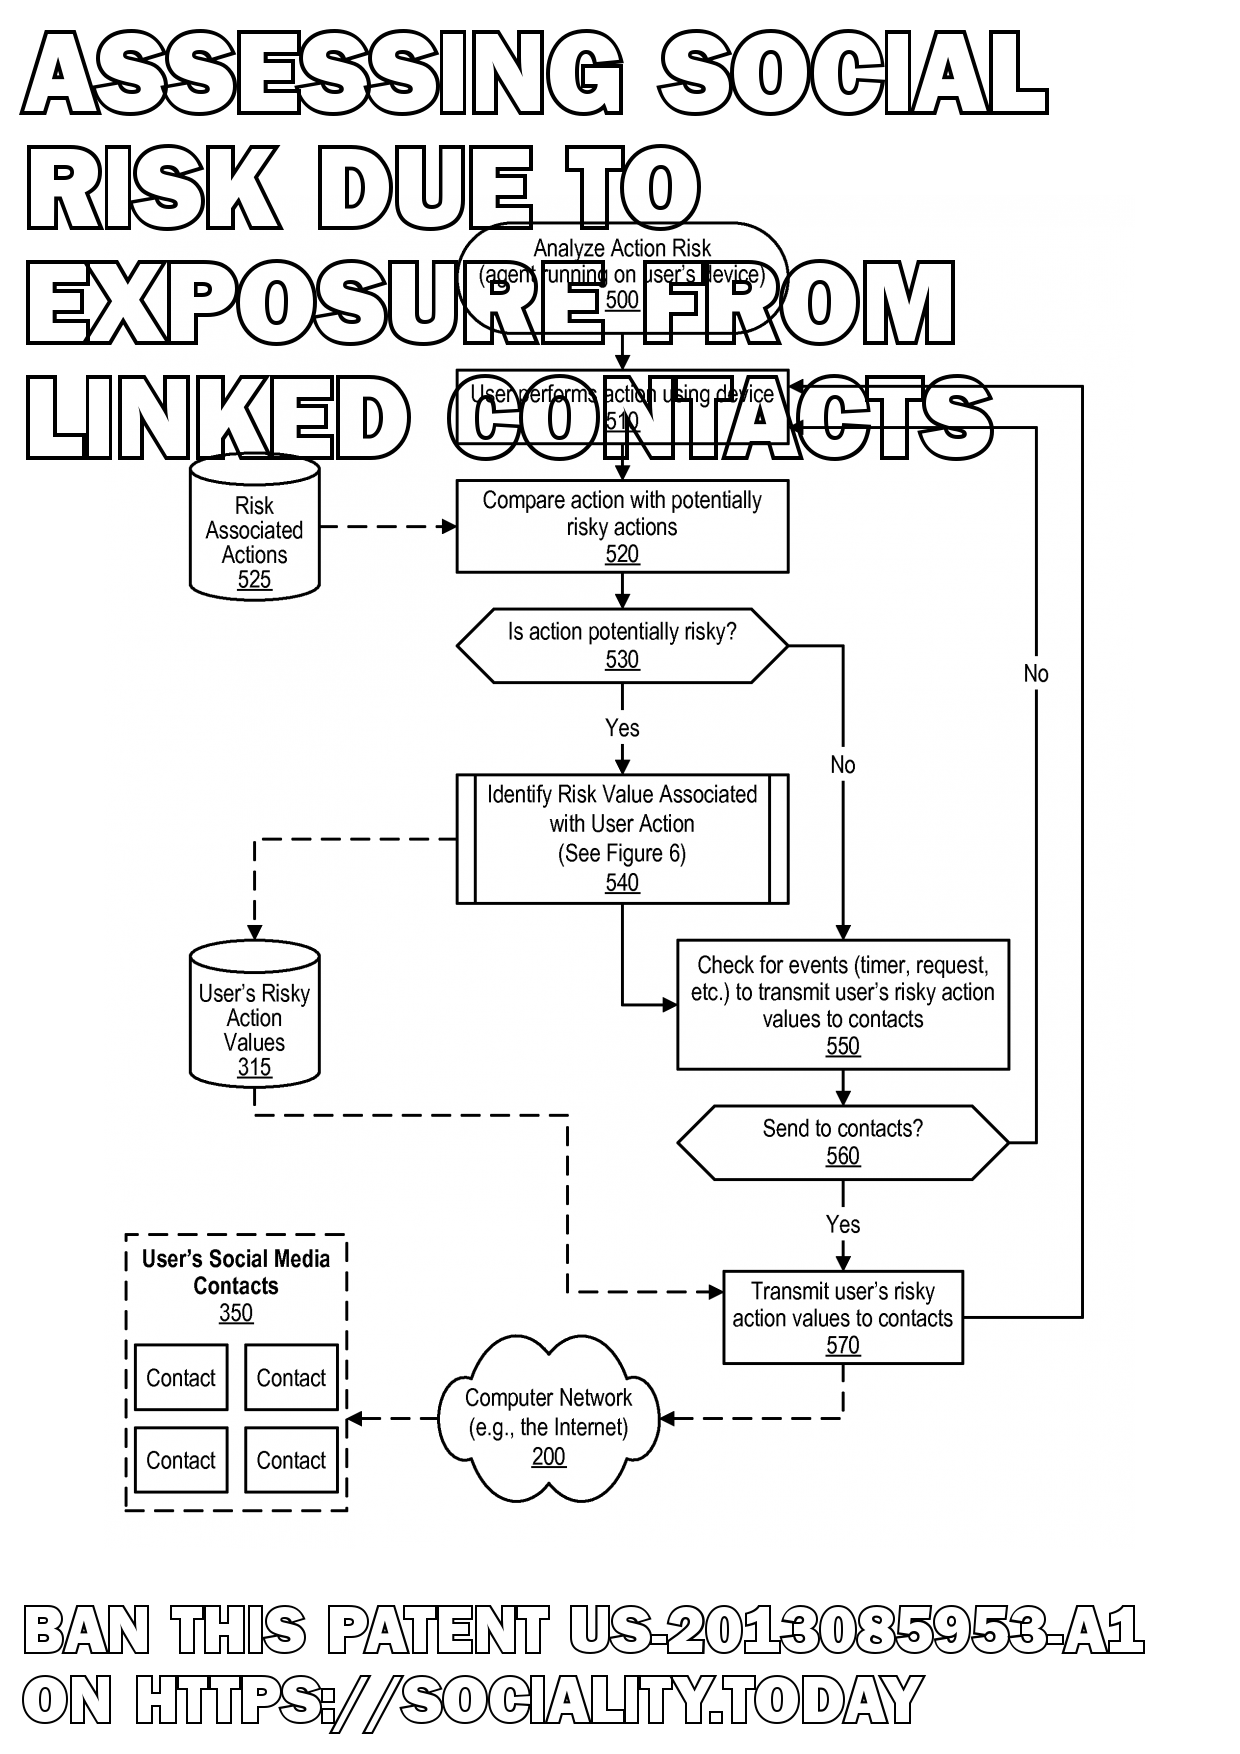 Assessing Social Risk Due To Exposure From Linked Contacts  - US-2013085953-A1